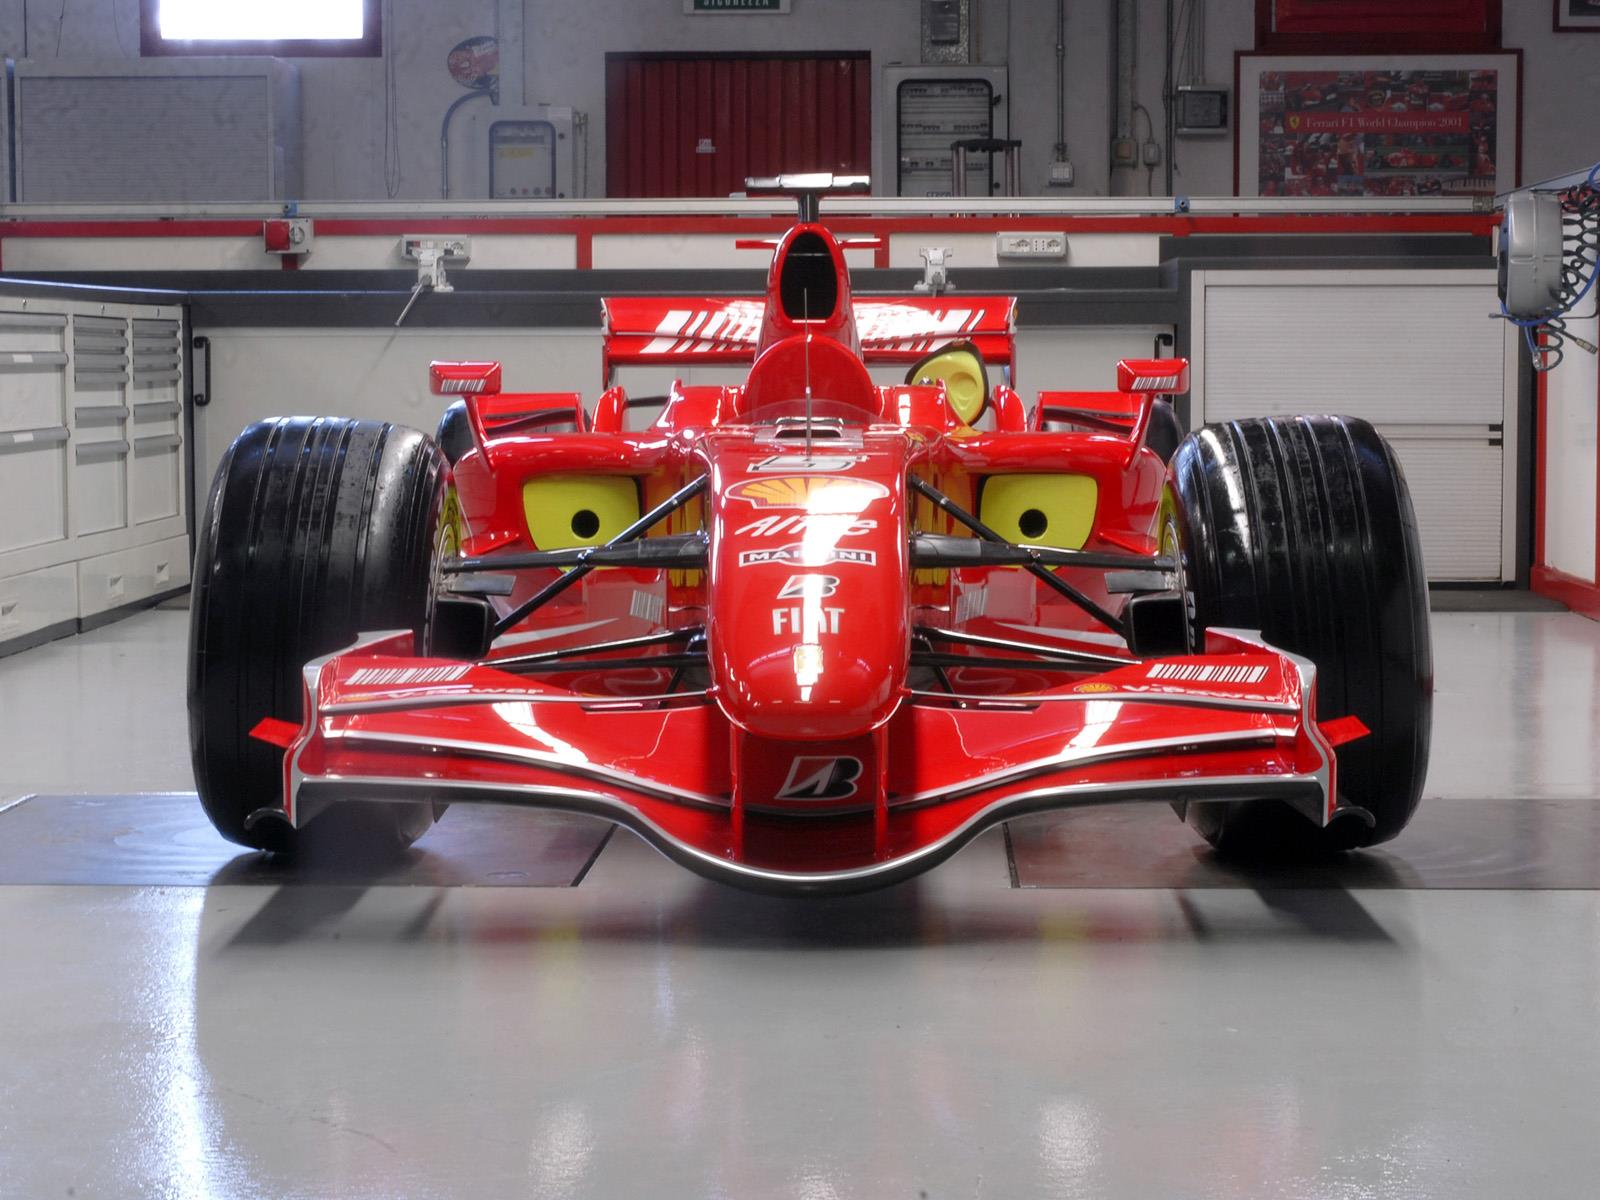 F1 Car Pictures Wallpaper Ferrari 5 Fonds 233 Cran Gratuits Sur L Automobile 224